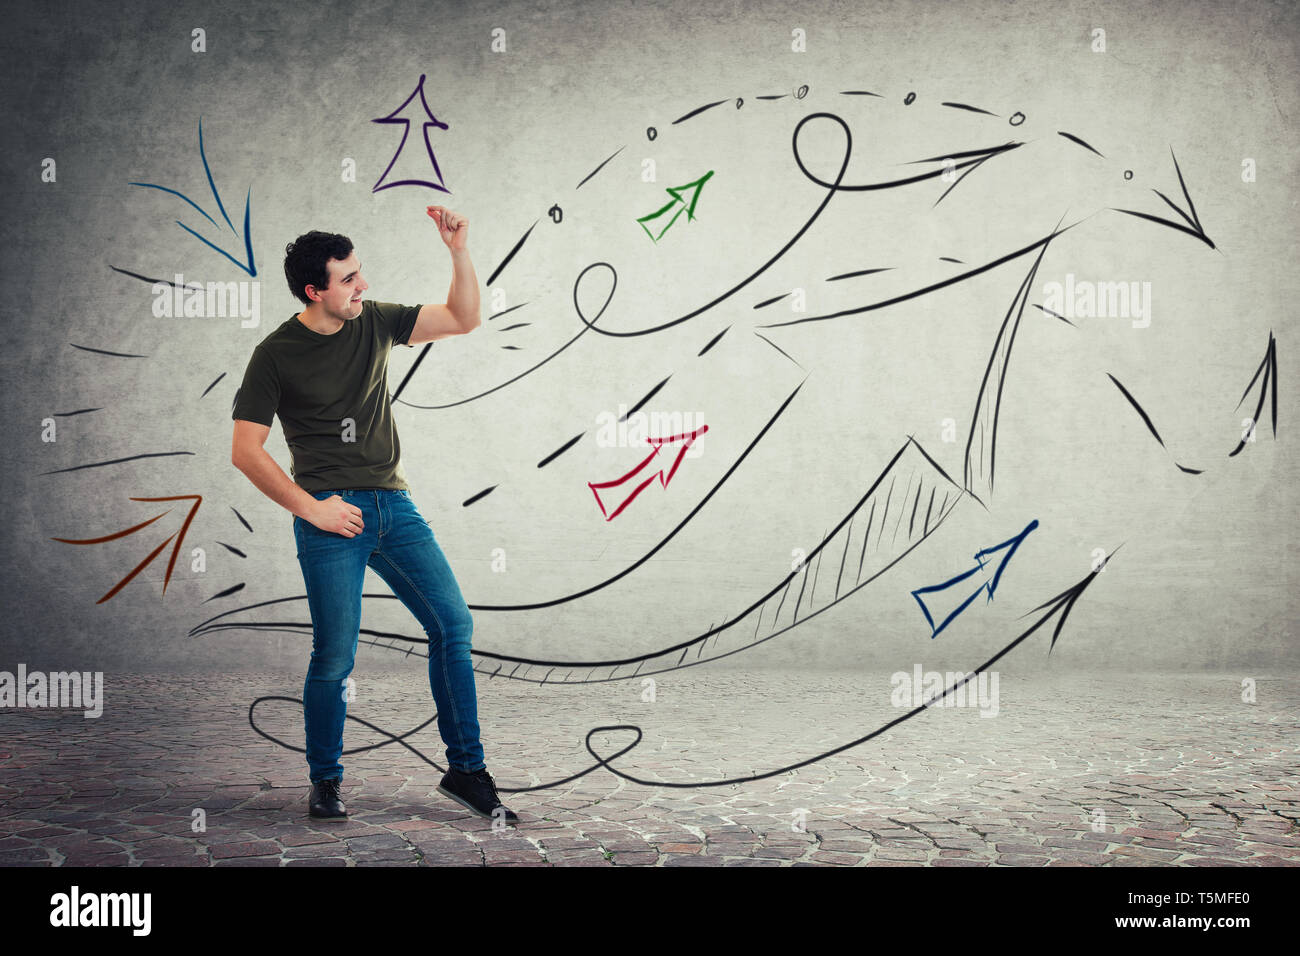 Contented casual young man dancing by the music, moves feeling the rhythm, funny entertainer. Arrows and lines going up as body language expression. - Stock Image